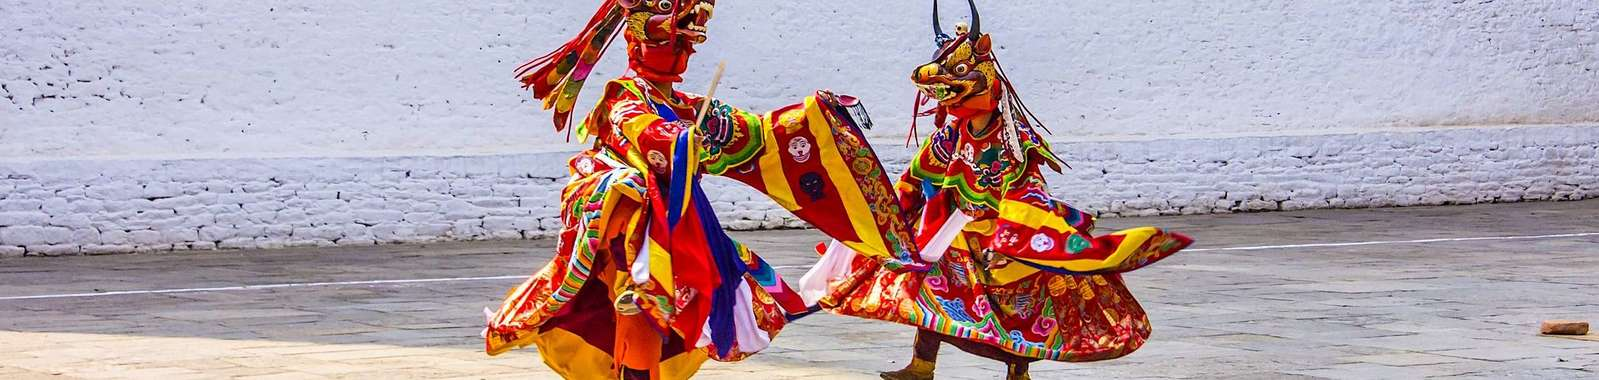 See masked dancers at a Tshechu (Bhutanese festival) a on a tailor-made holiday to Bhutan